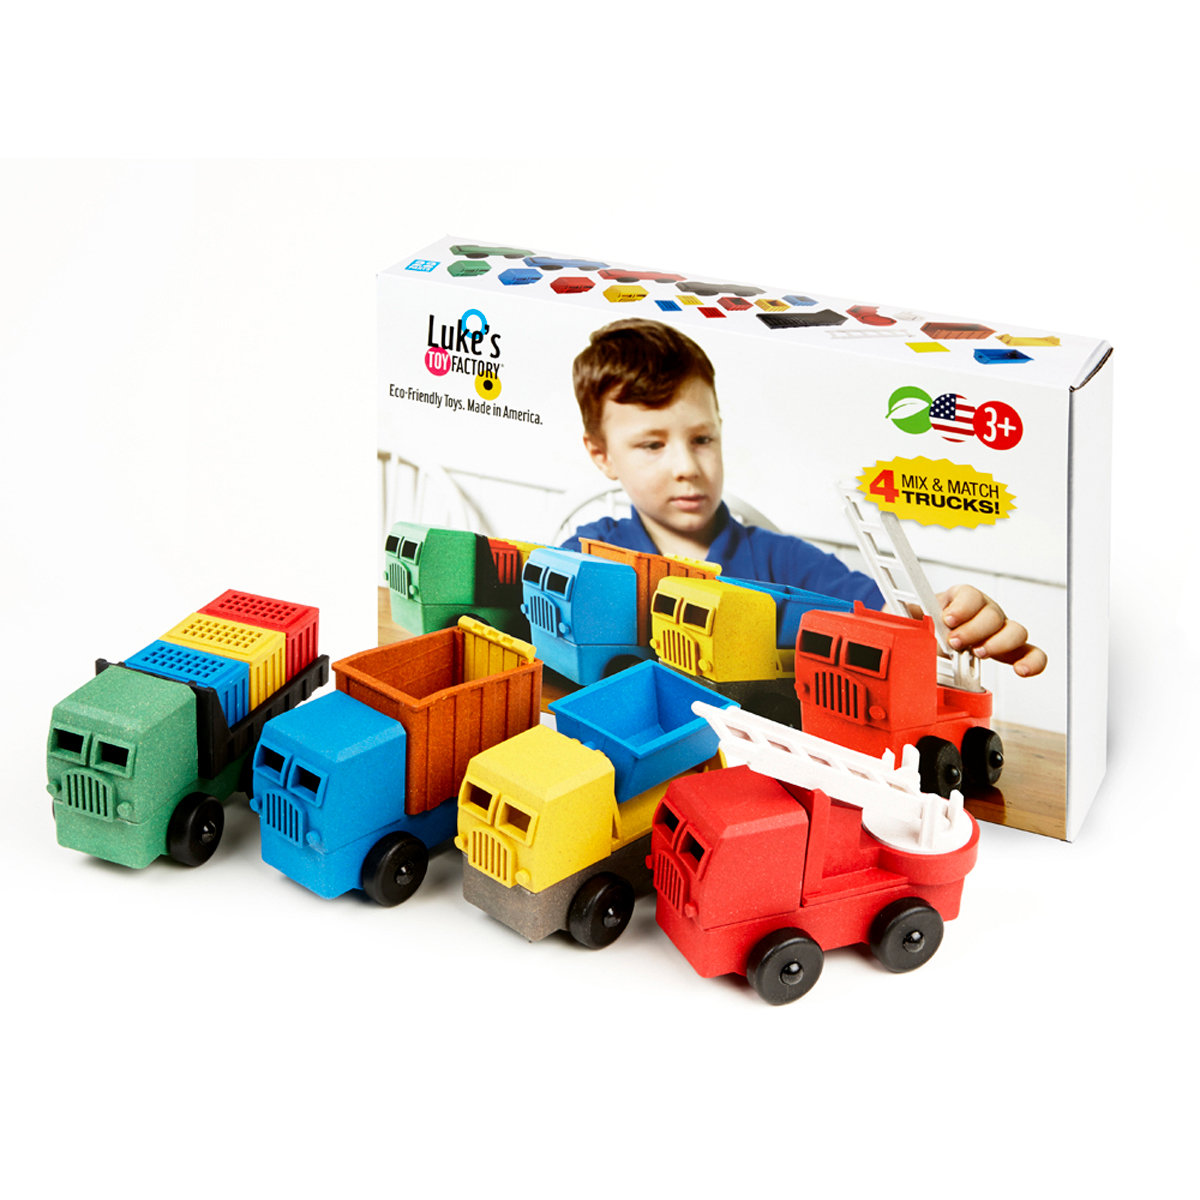 Luke's Toys Educational Truck 4 Pack